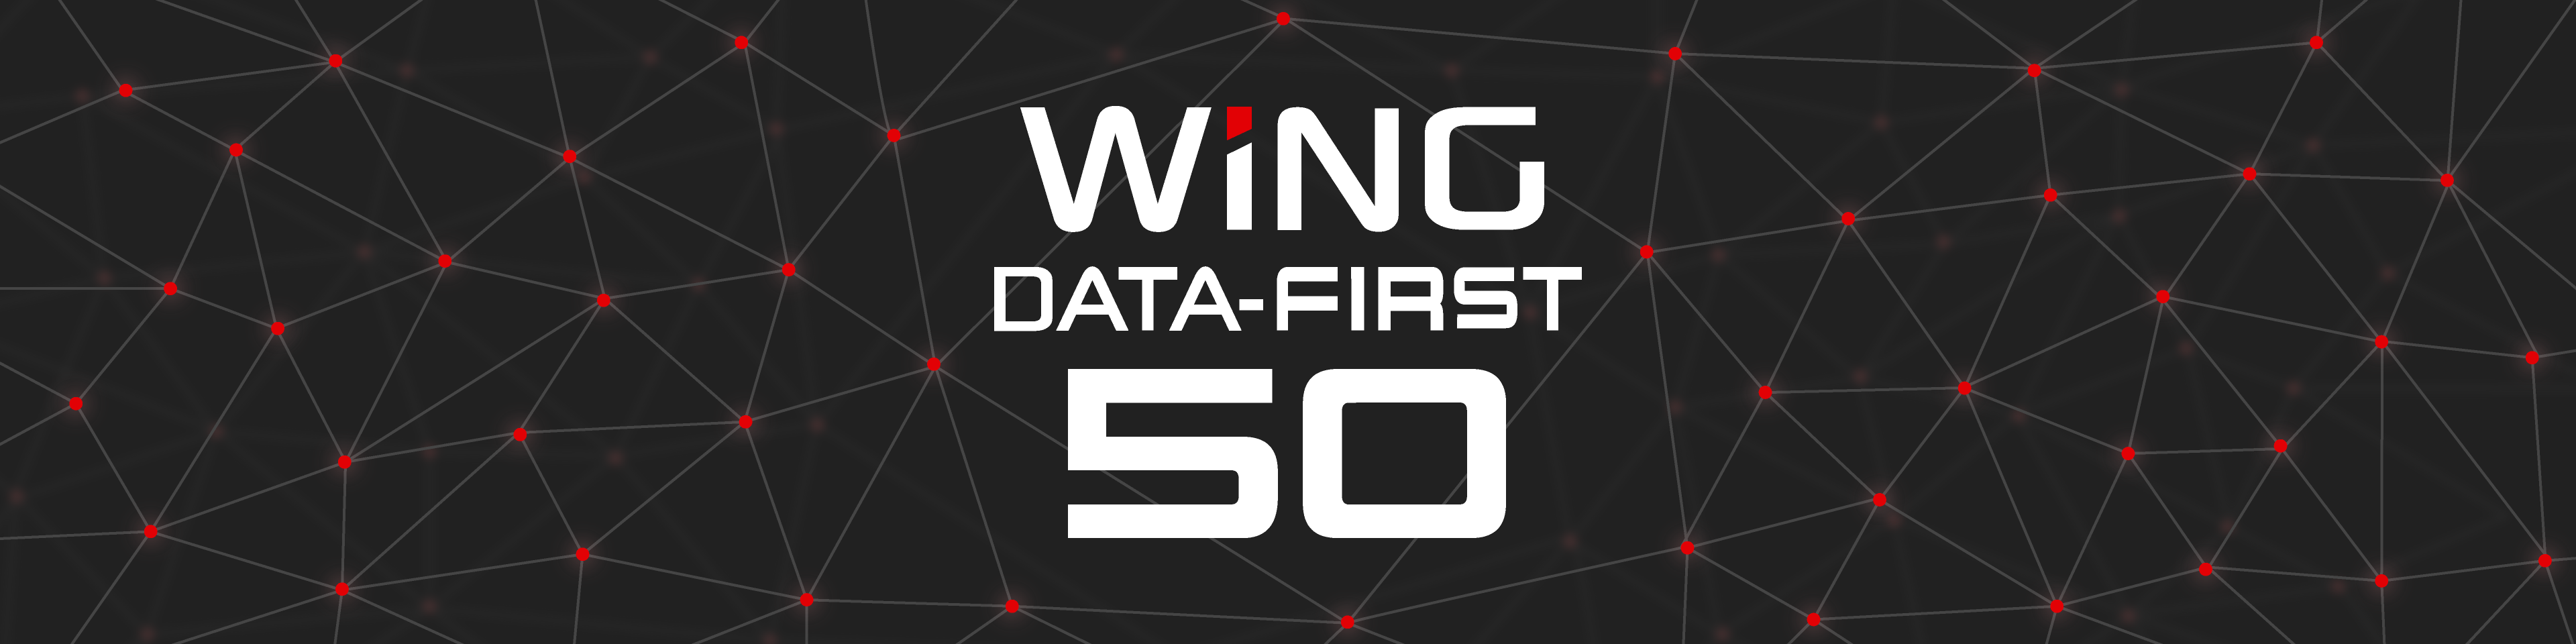 The Wing Data-First 50: AI-Powered Business Applications